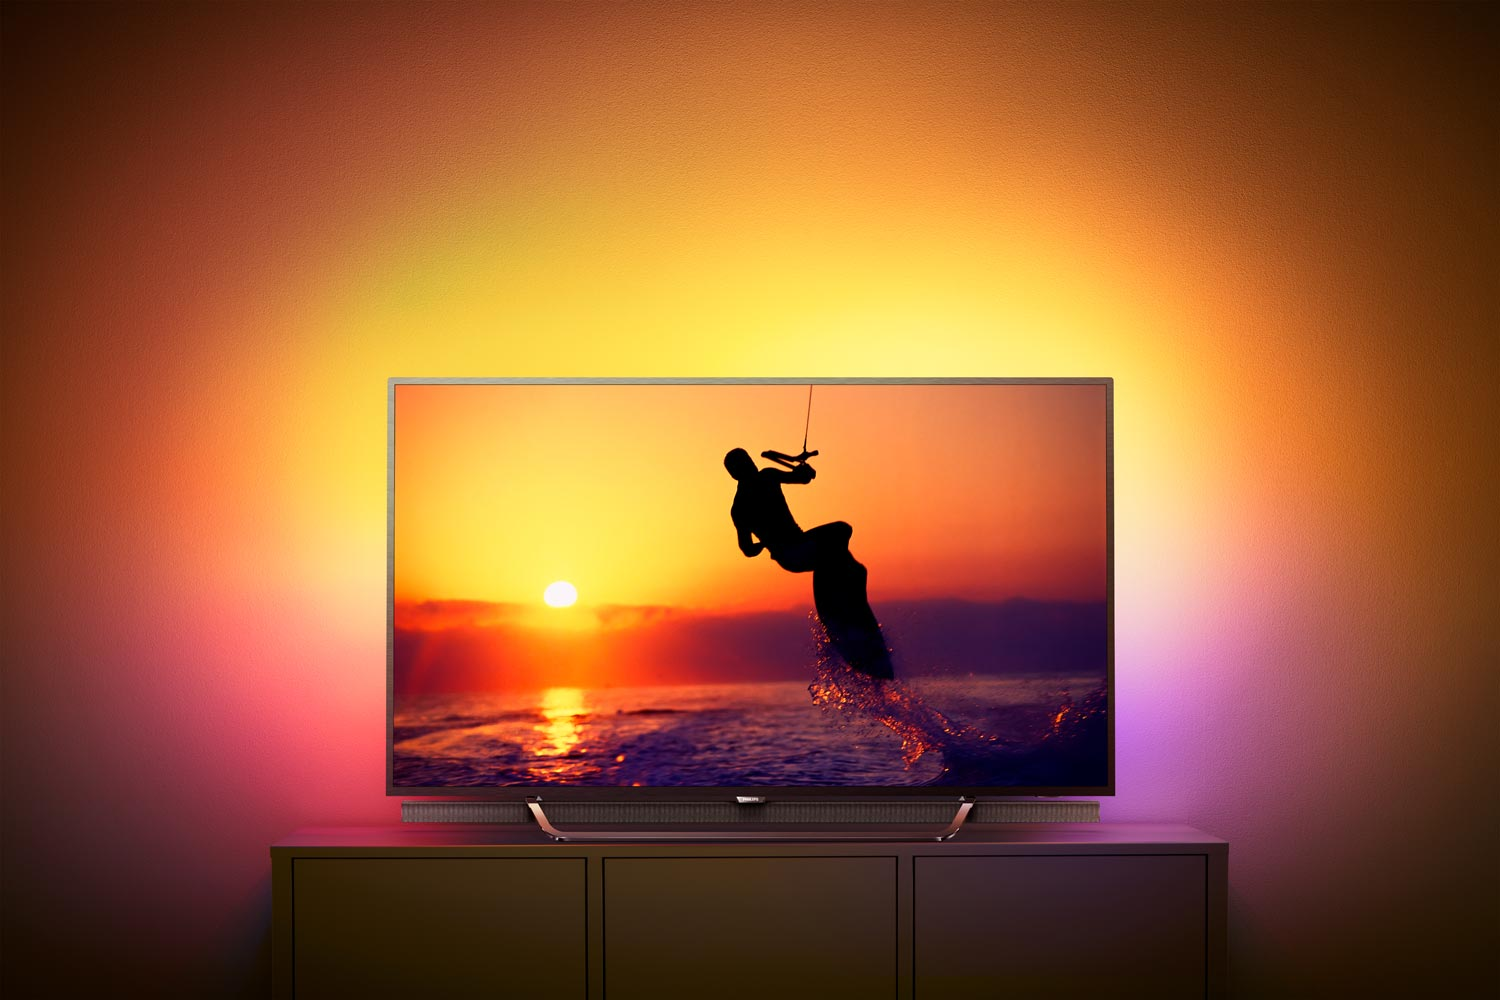 Philips unveils its first quantum dot LCD TV range with